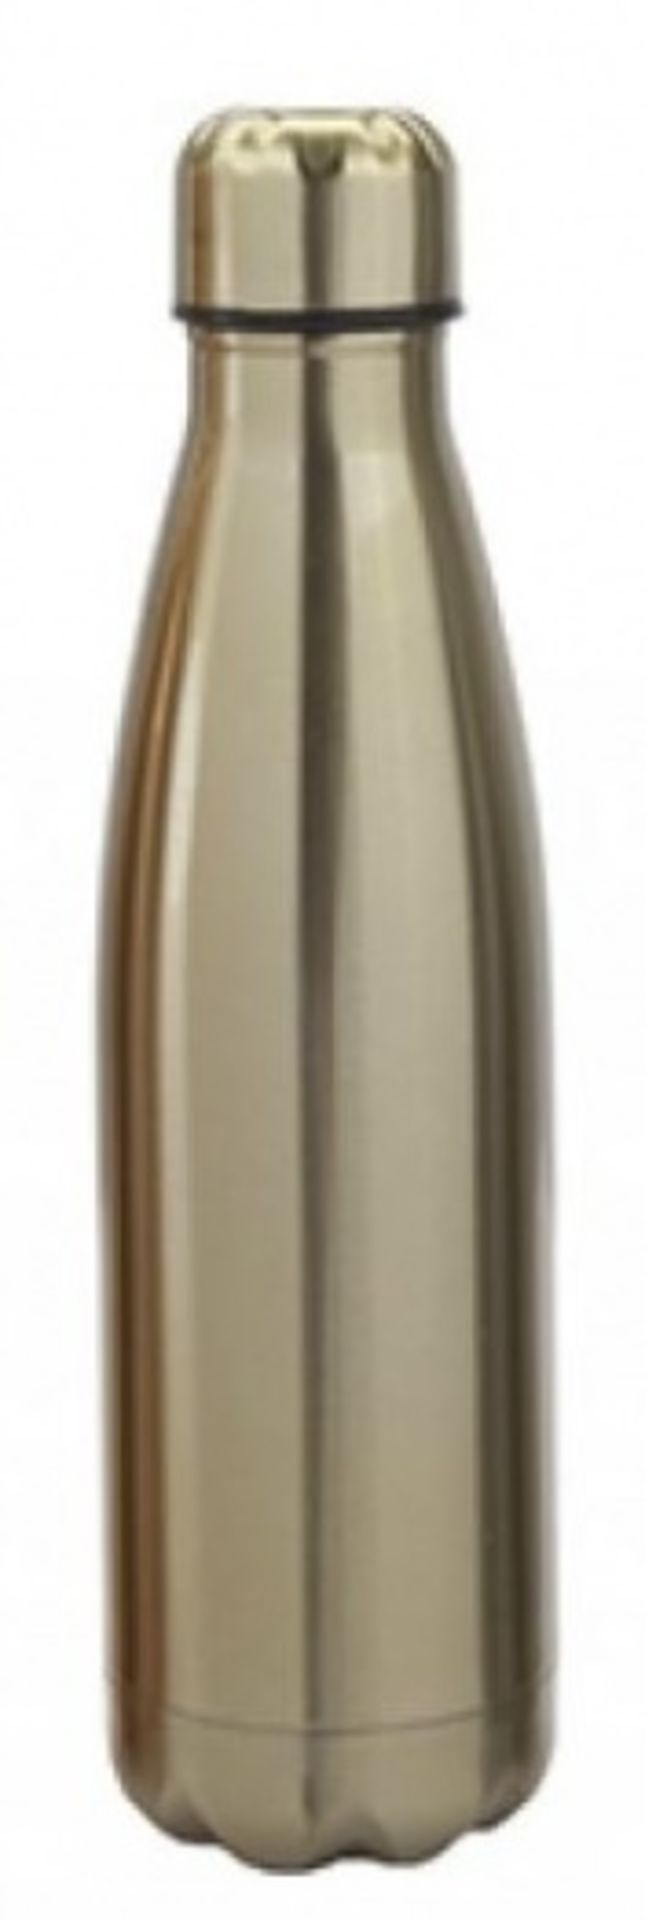 Lot 10607 - + VAT Brand New Vacuum Insulated Steel Double Wall Vacuum Drinking Bottle (Colours May Vary)